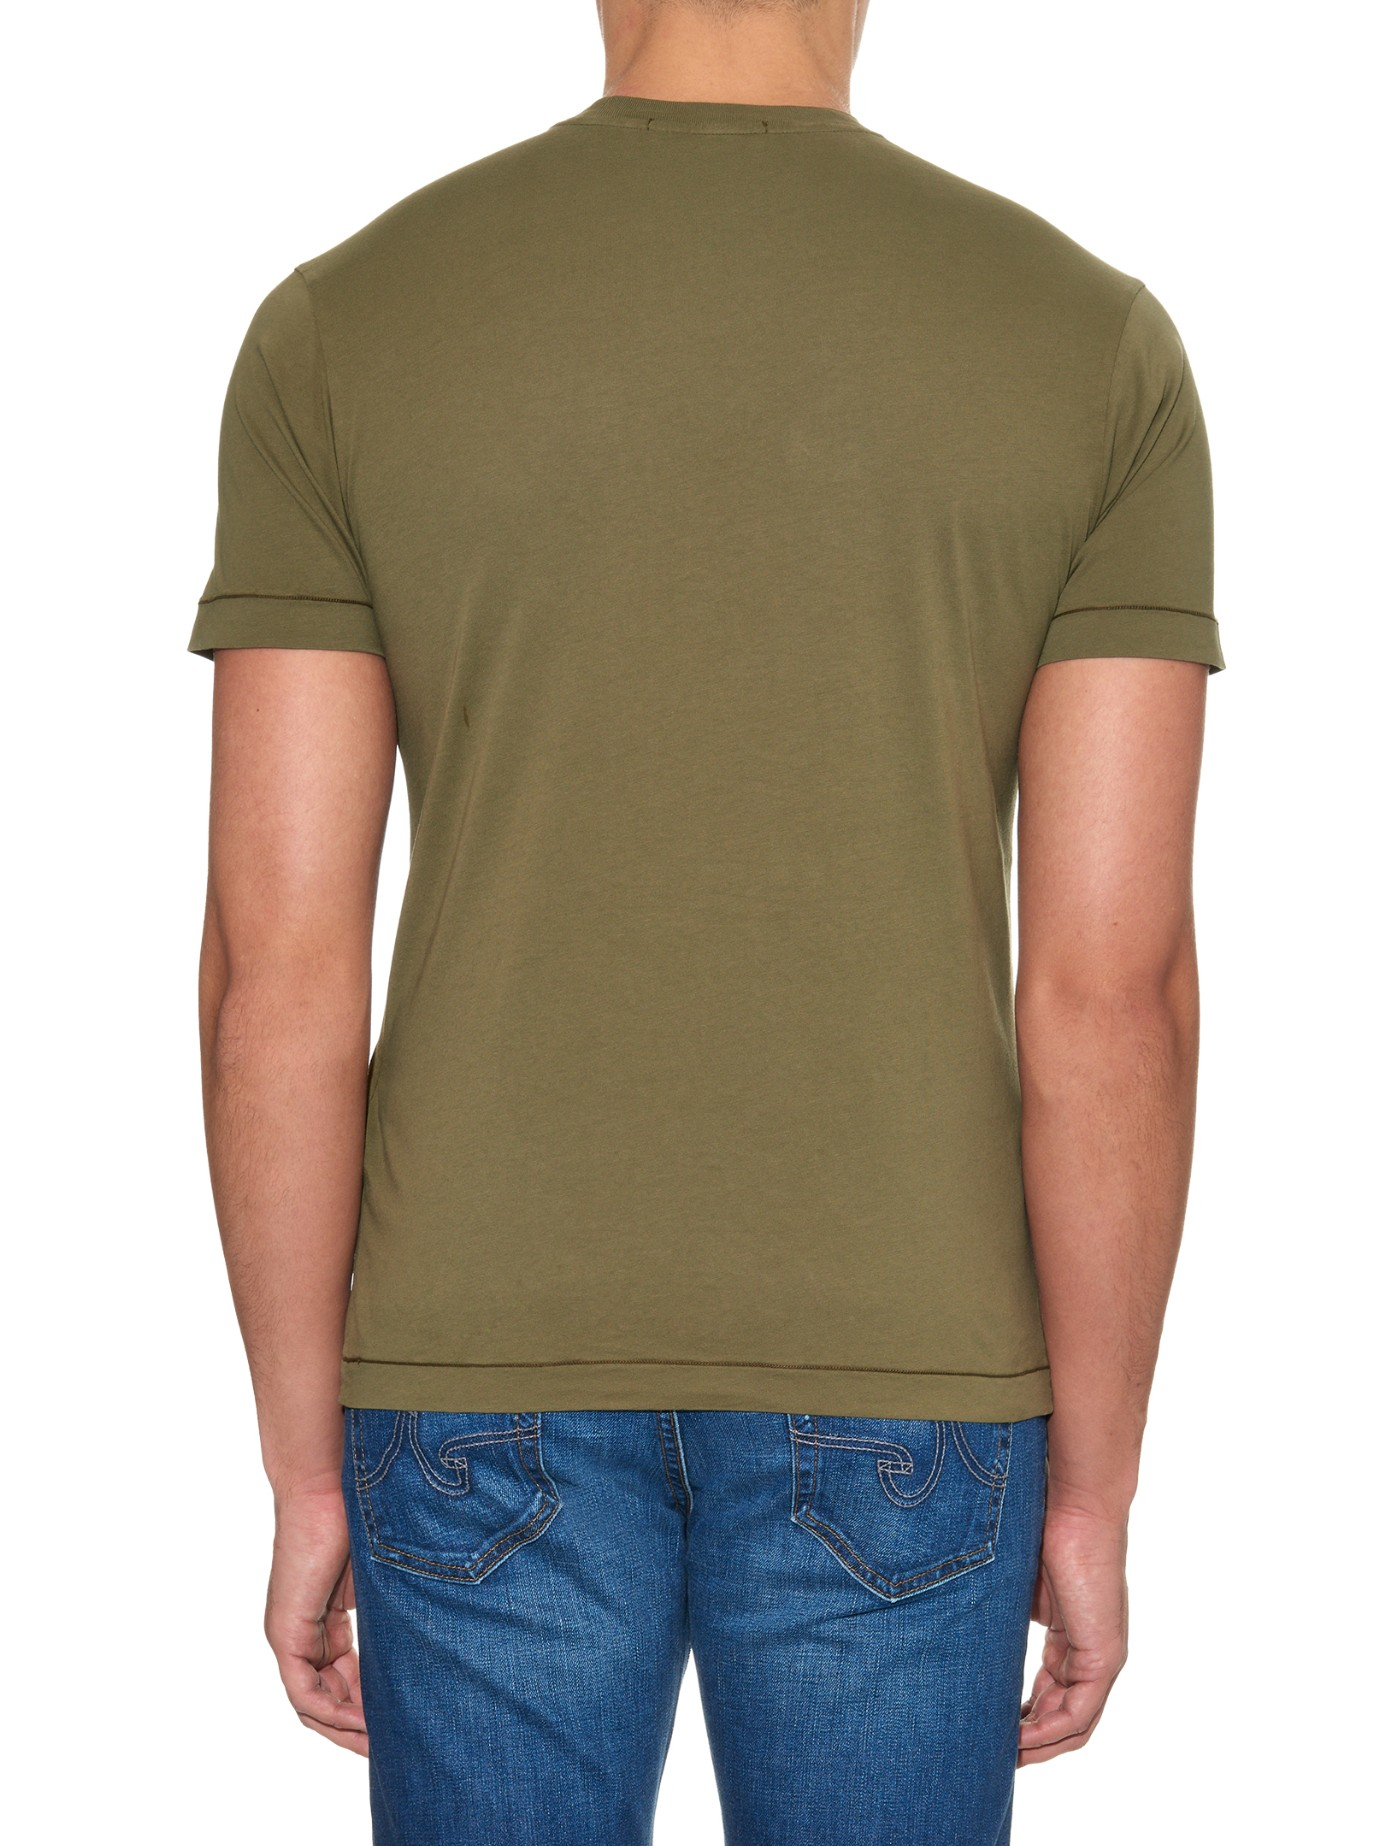 Stone island Logo-Patch Jersey T-Shirt in Brown for Men - Lyst